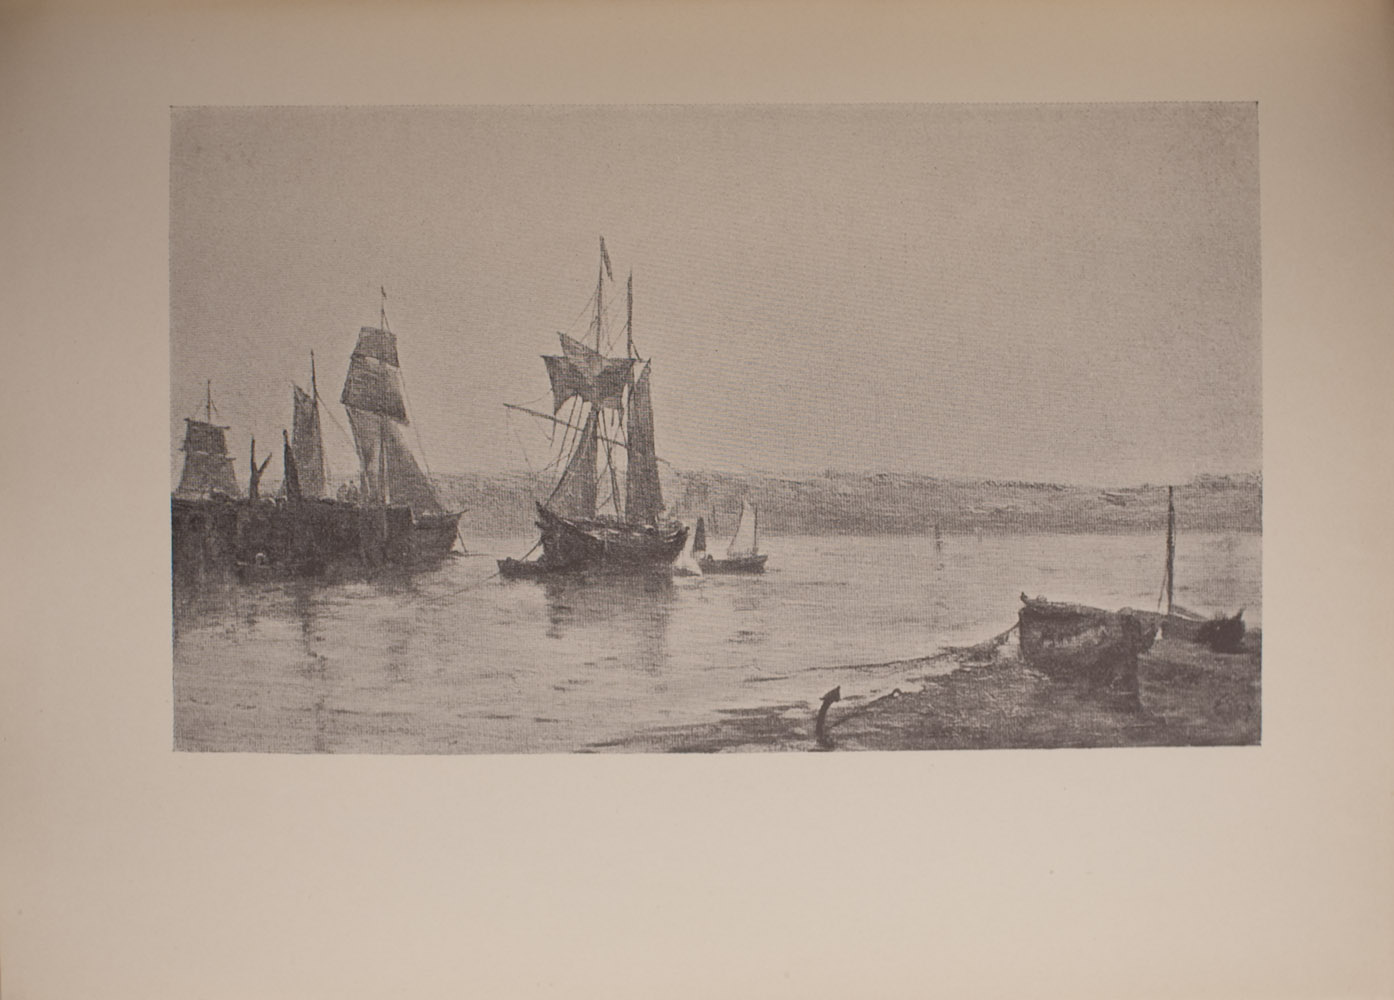 The image is of a waterside scene In the left middle ground are three large anchored boats with sails Immediately to the right of the larger boats is a small boat with sails In the right foreground there are two small boats with no sails anchored to the shoreline In the background another shoreline is visible The image is horizontally displayed